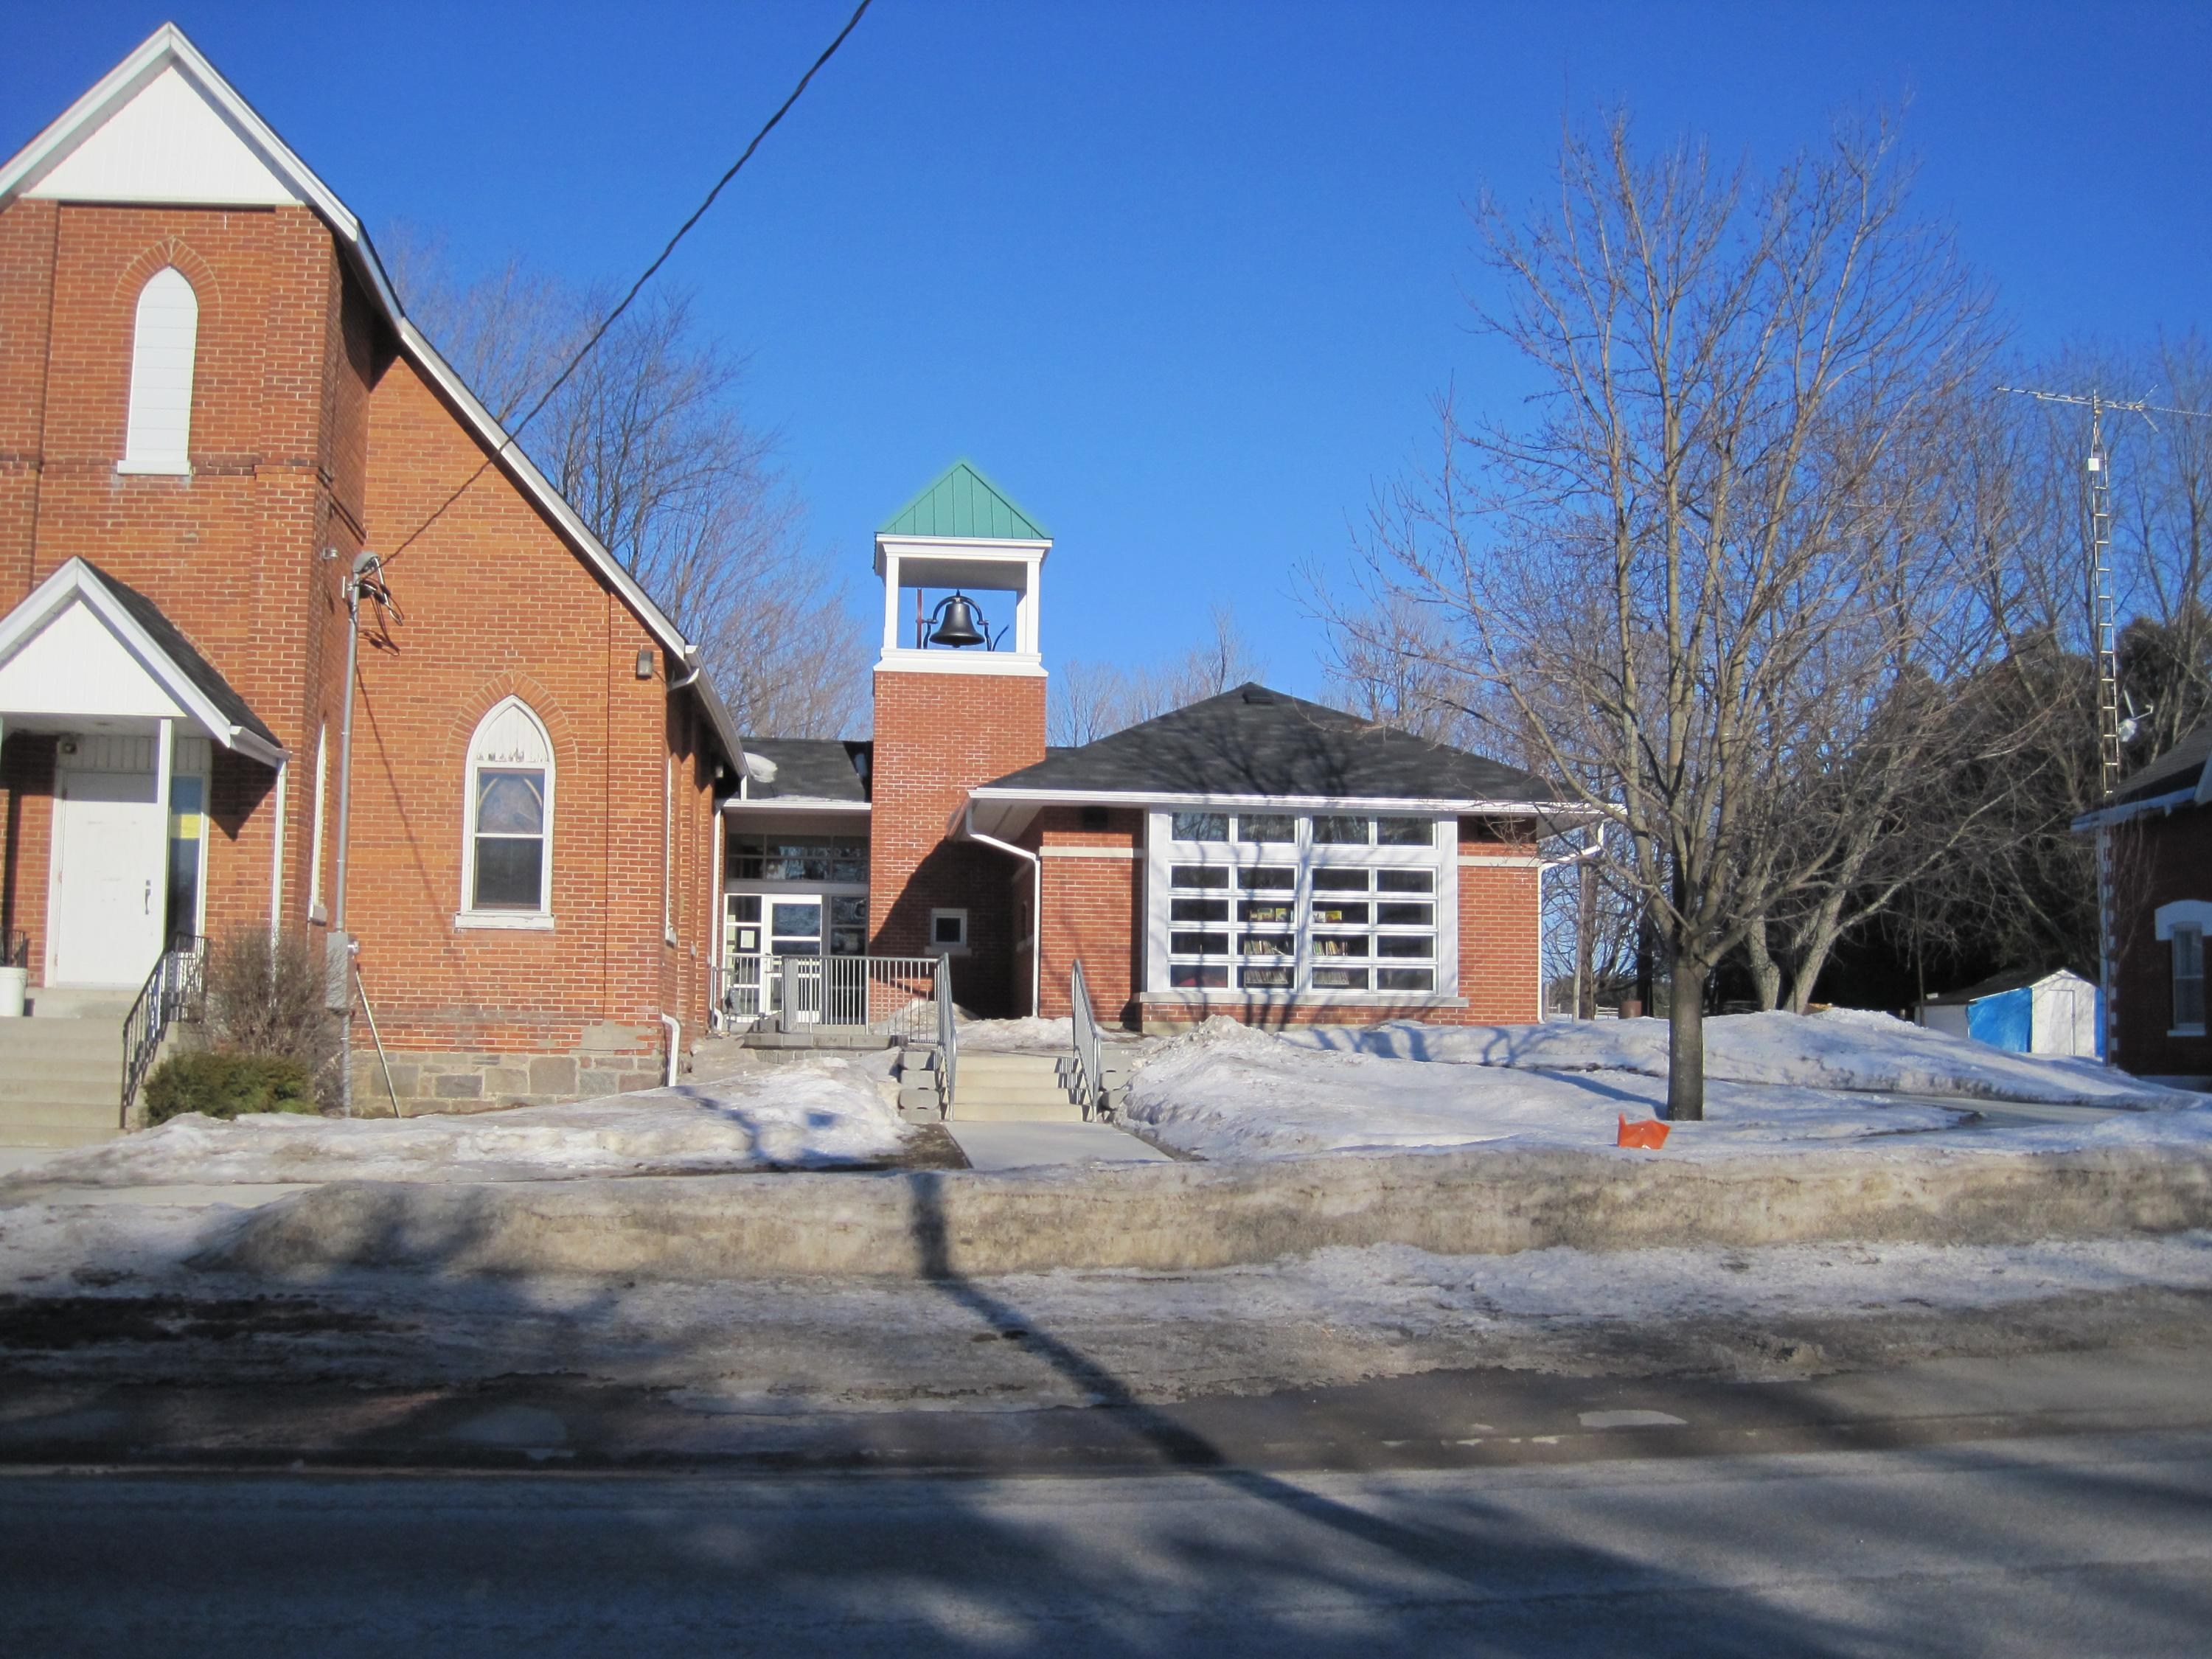 Front of Centrenton Community Hall on a sunny day with snow on the ground